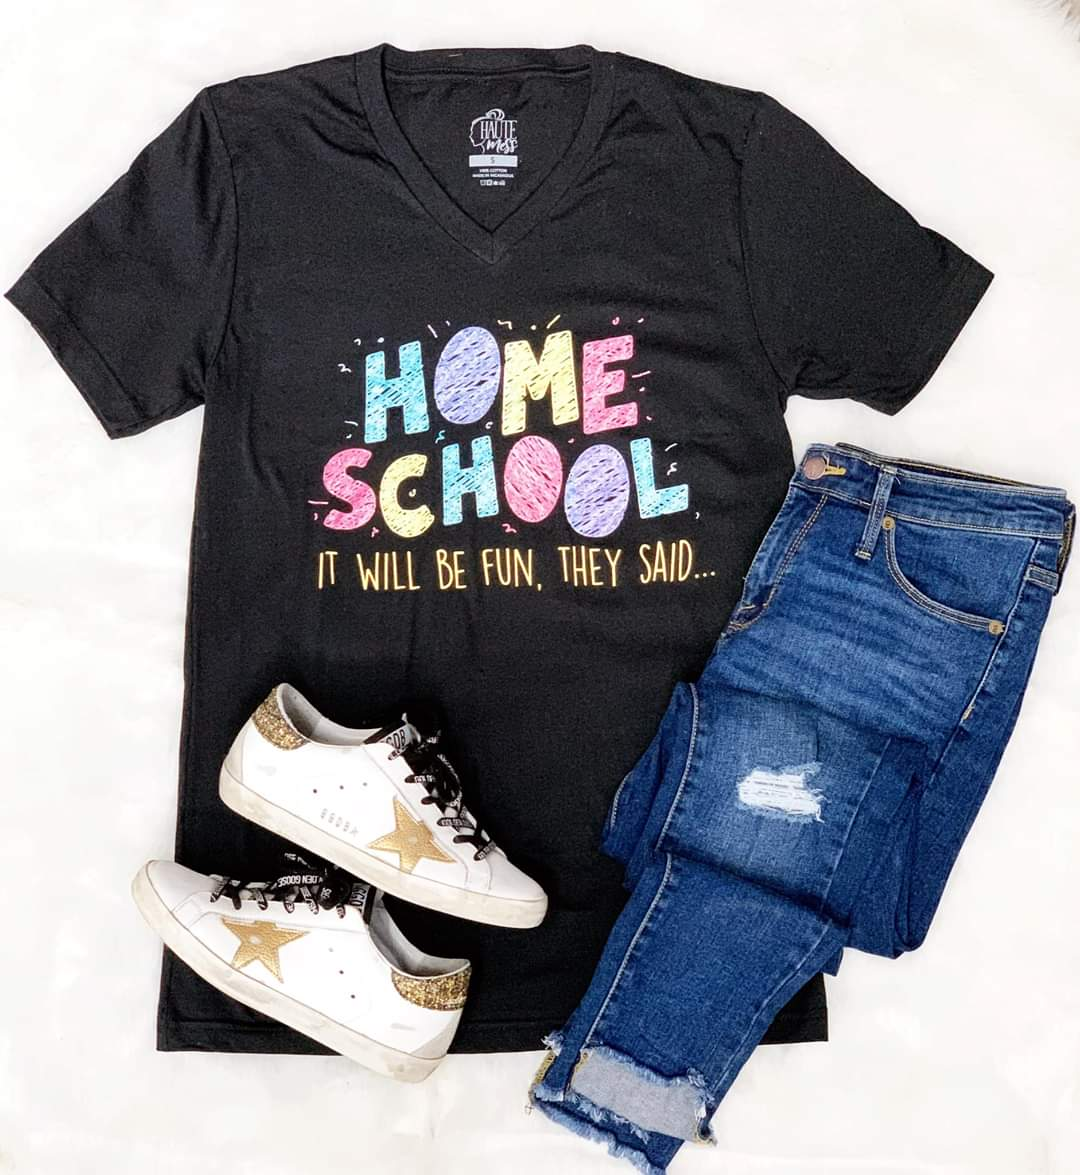 Homeschool Tee